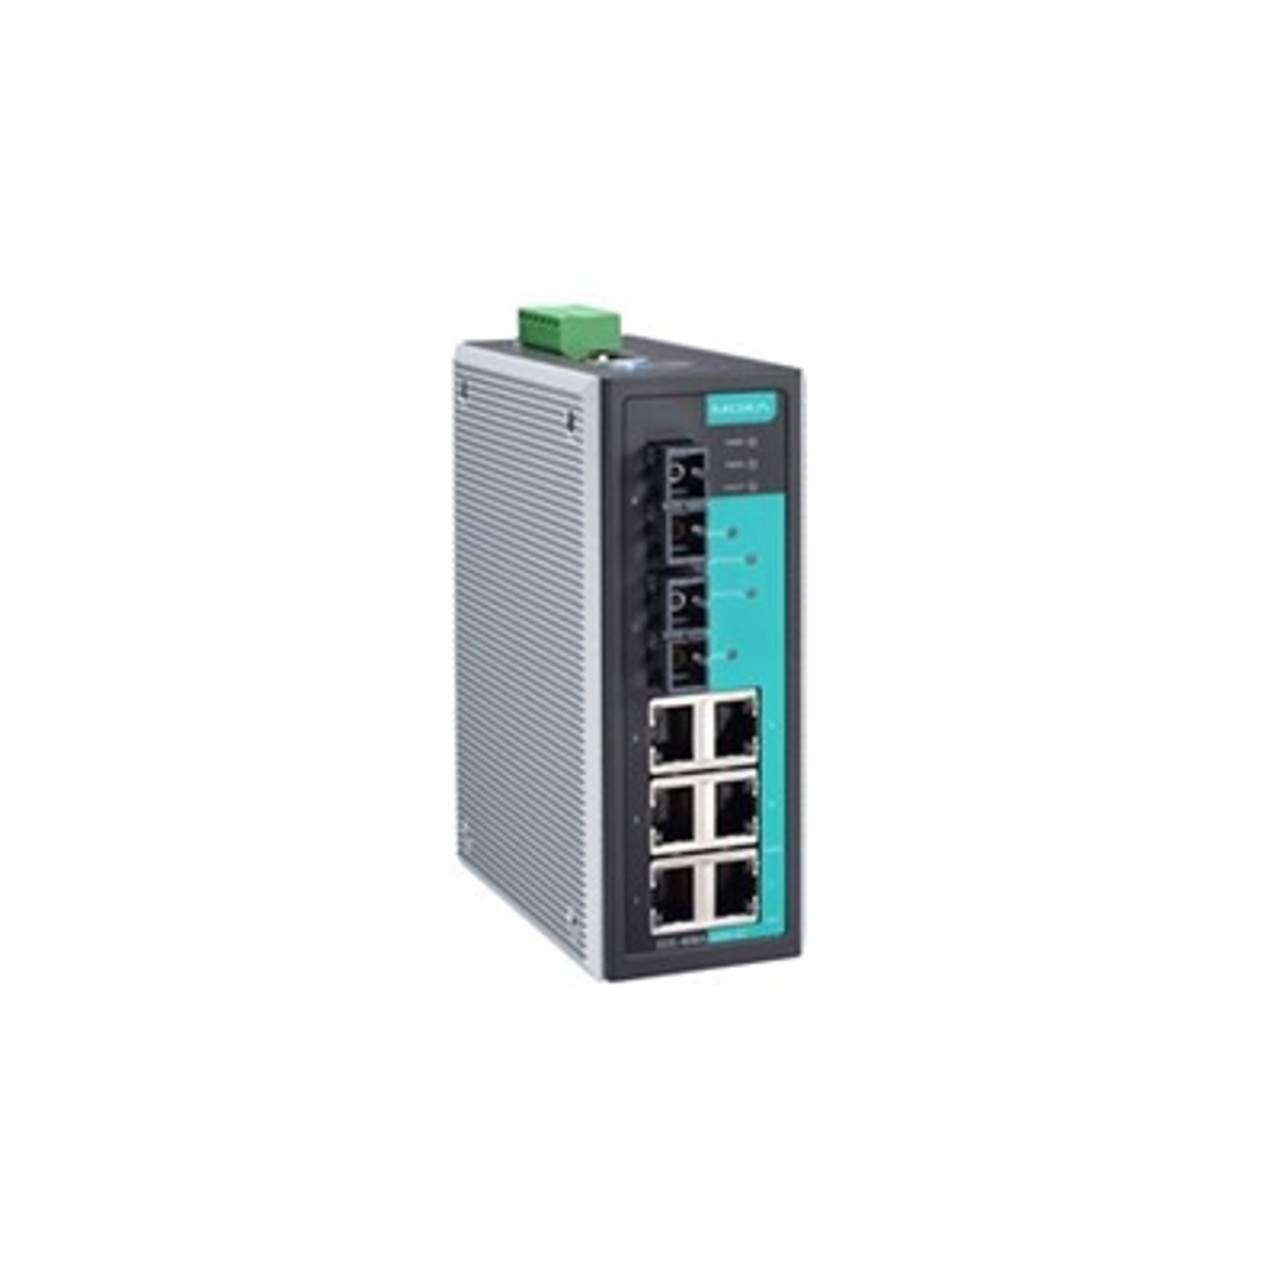 Moxa EDS-408A-MM-SC Entry-Level Managed Ethernet Switch